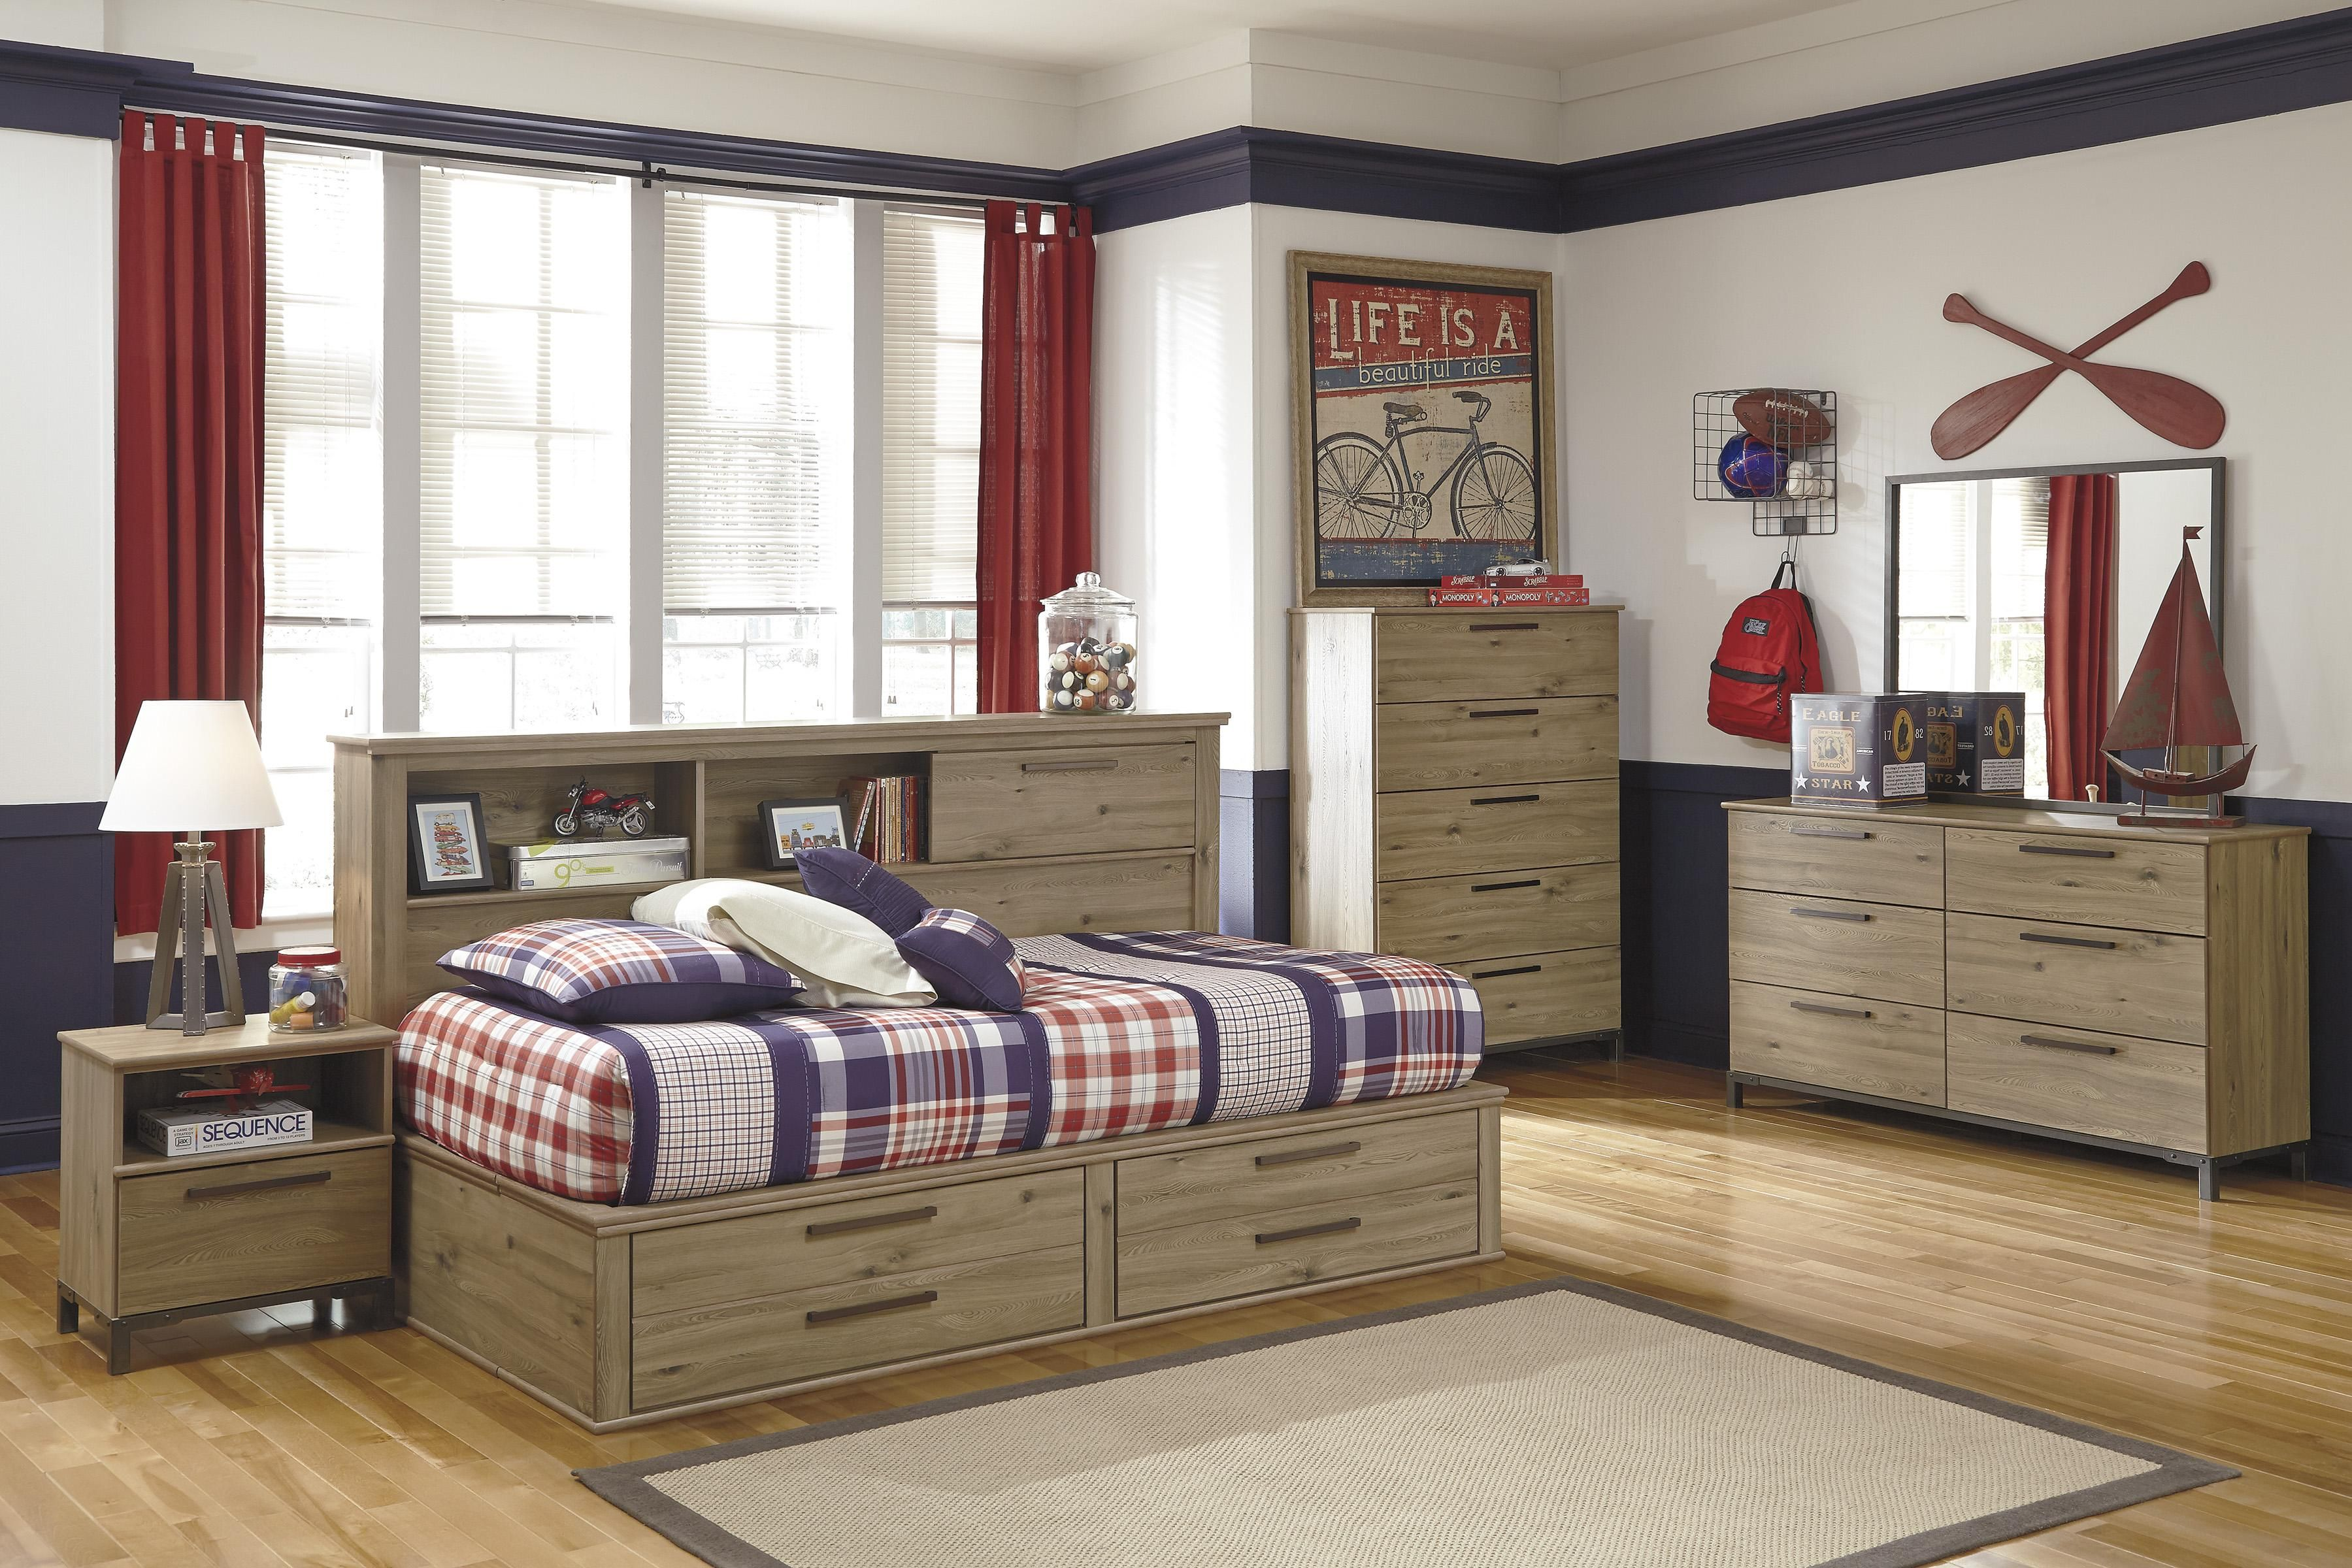 Ashley Furniture S Dexifield Youth Bedroom Series B298 Speedy Furniture Of Robinson Youth Bedroom Bed Frame With Drawers Bed Frame And Headboard